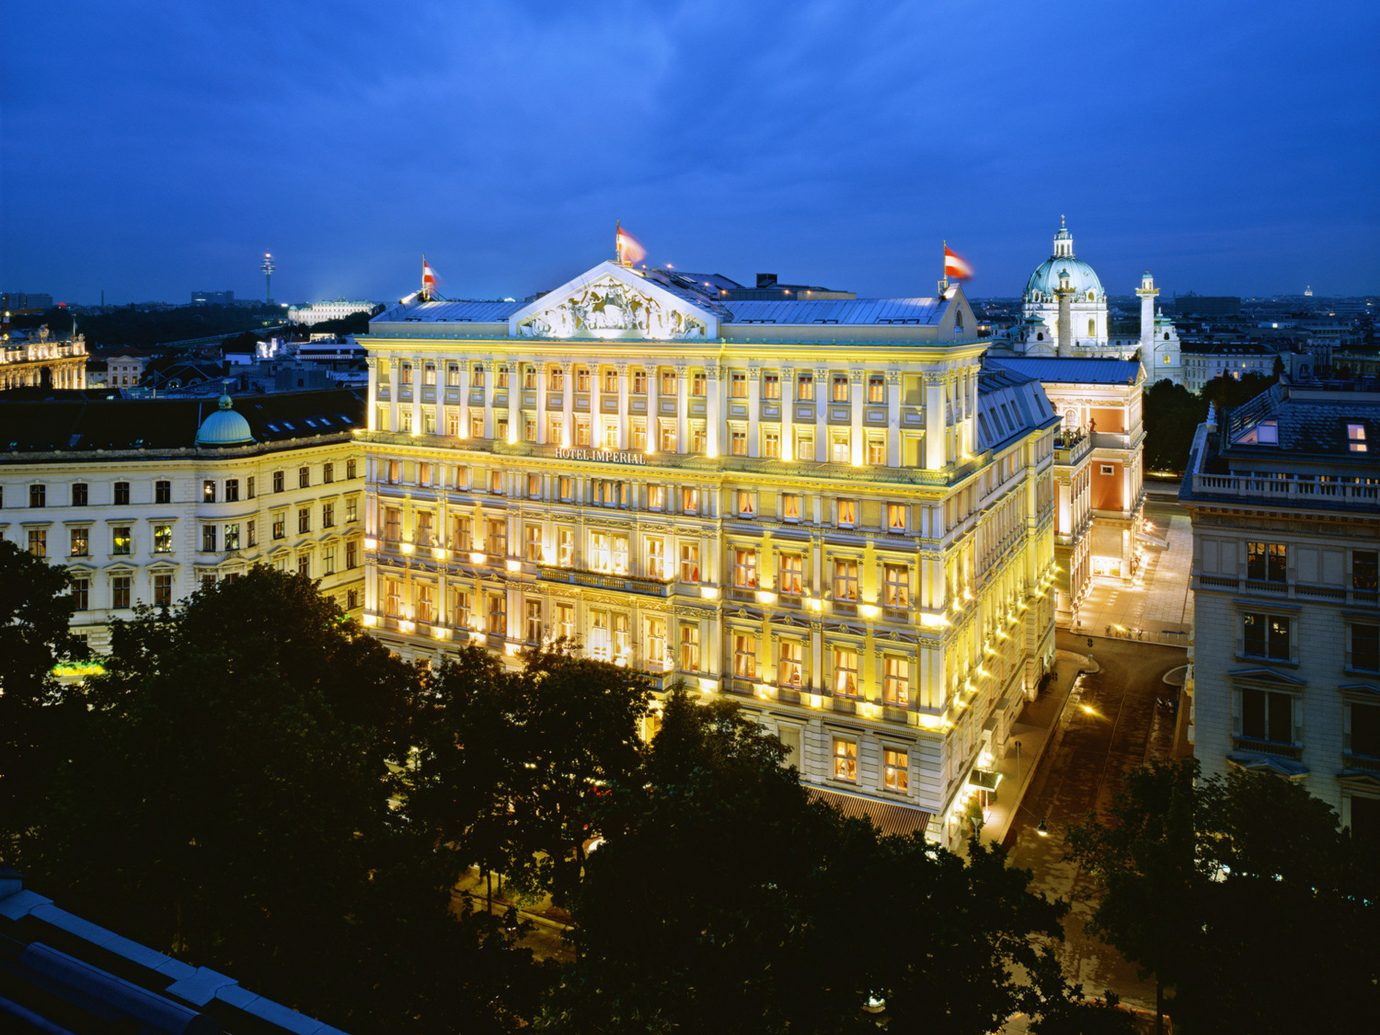 View of Hotel Imperial at night